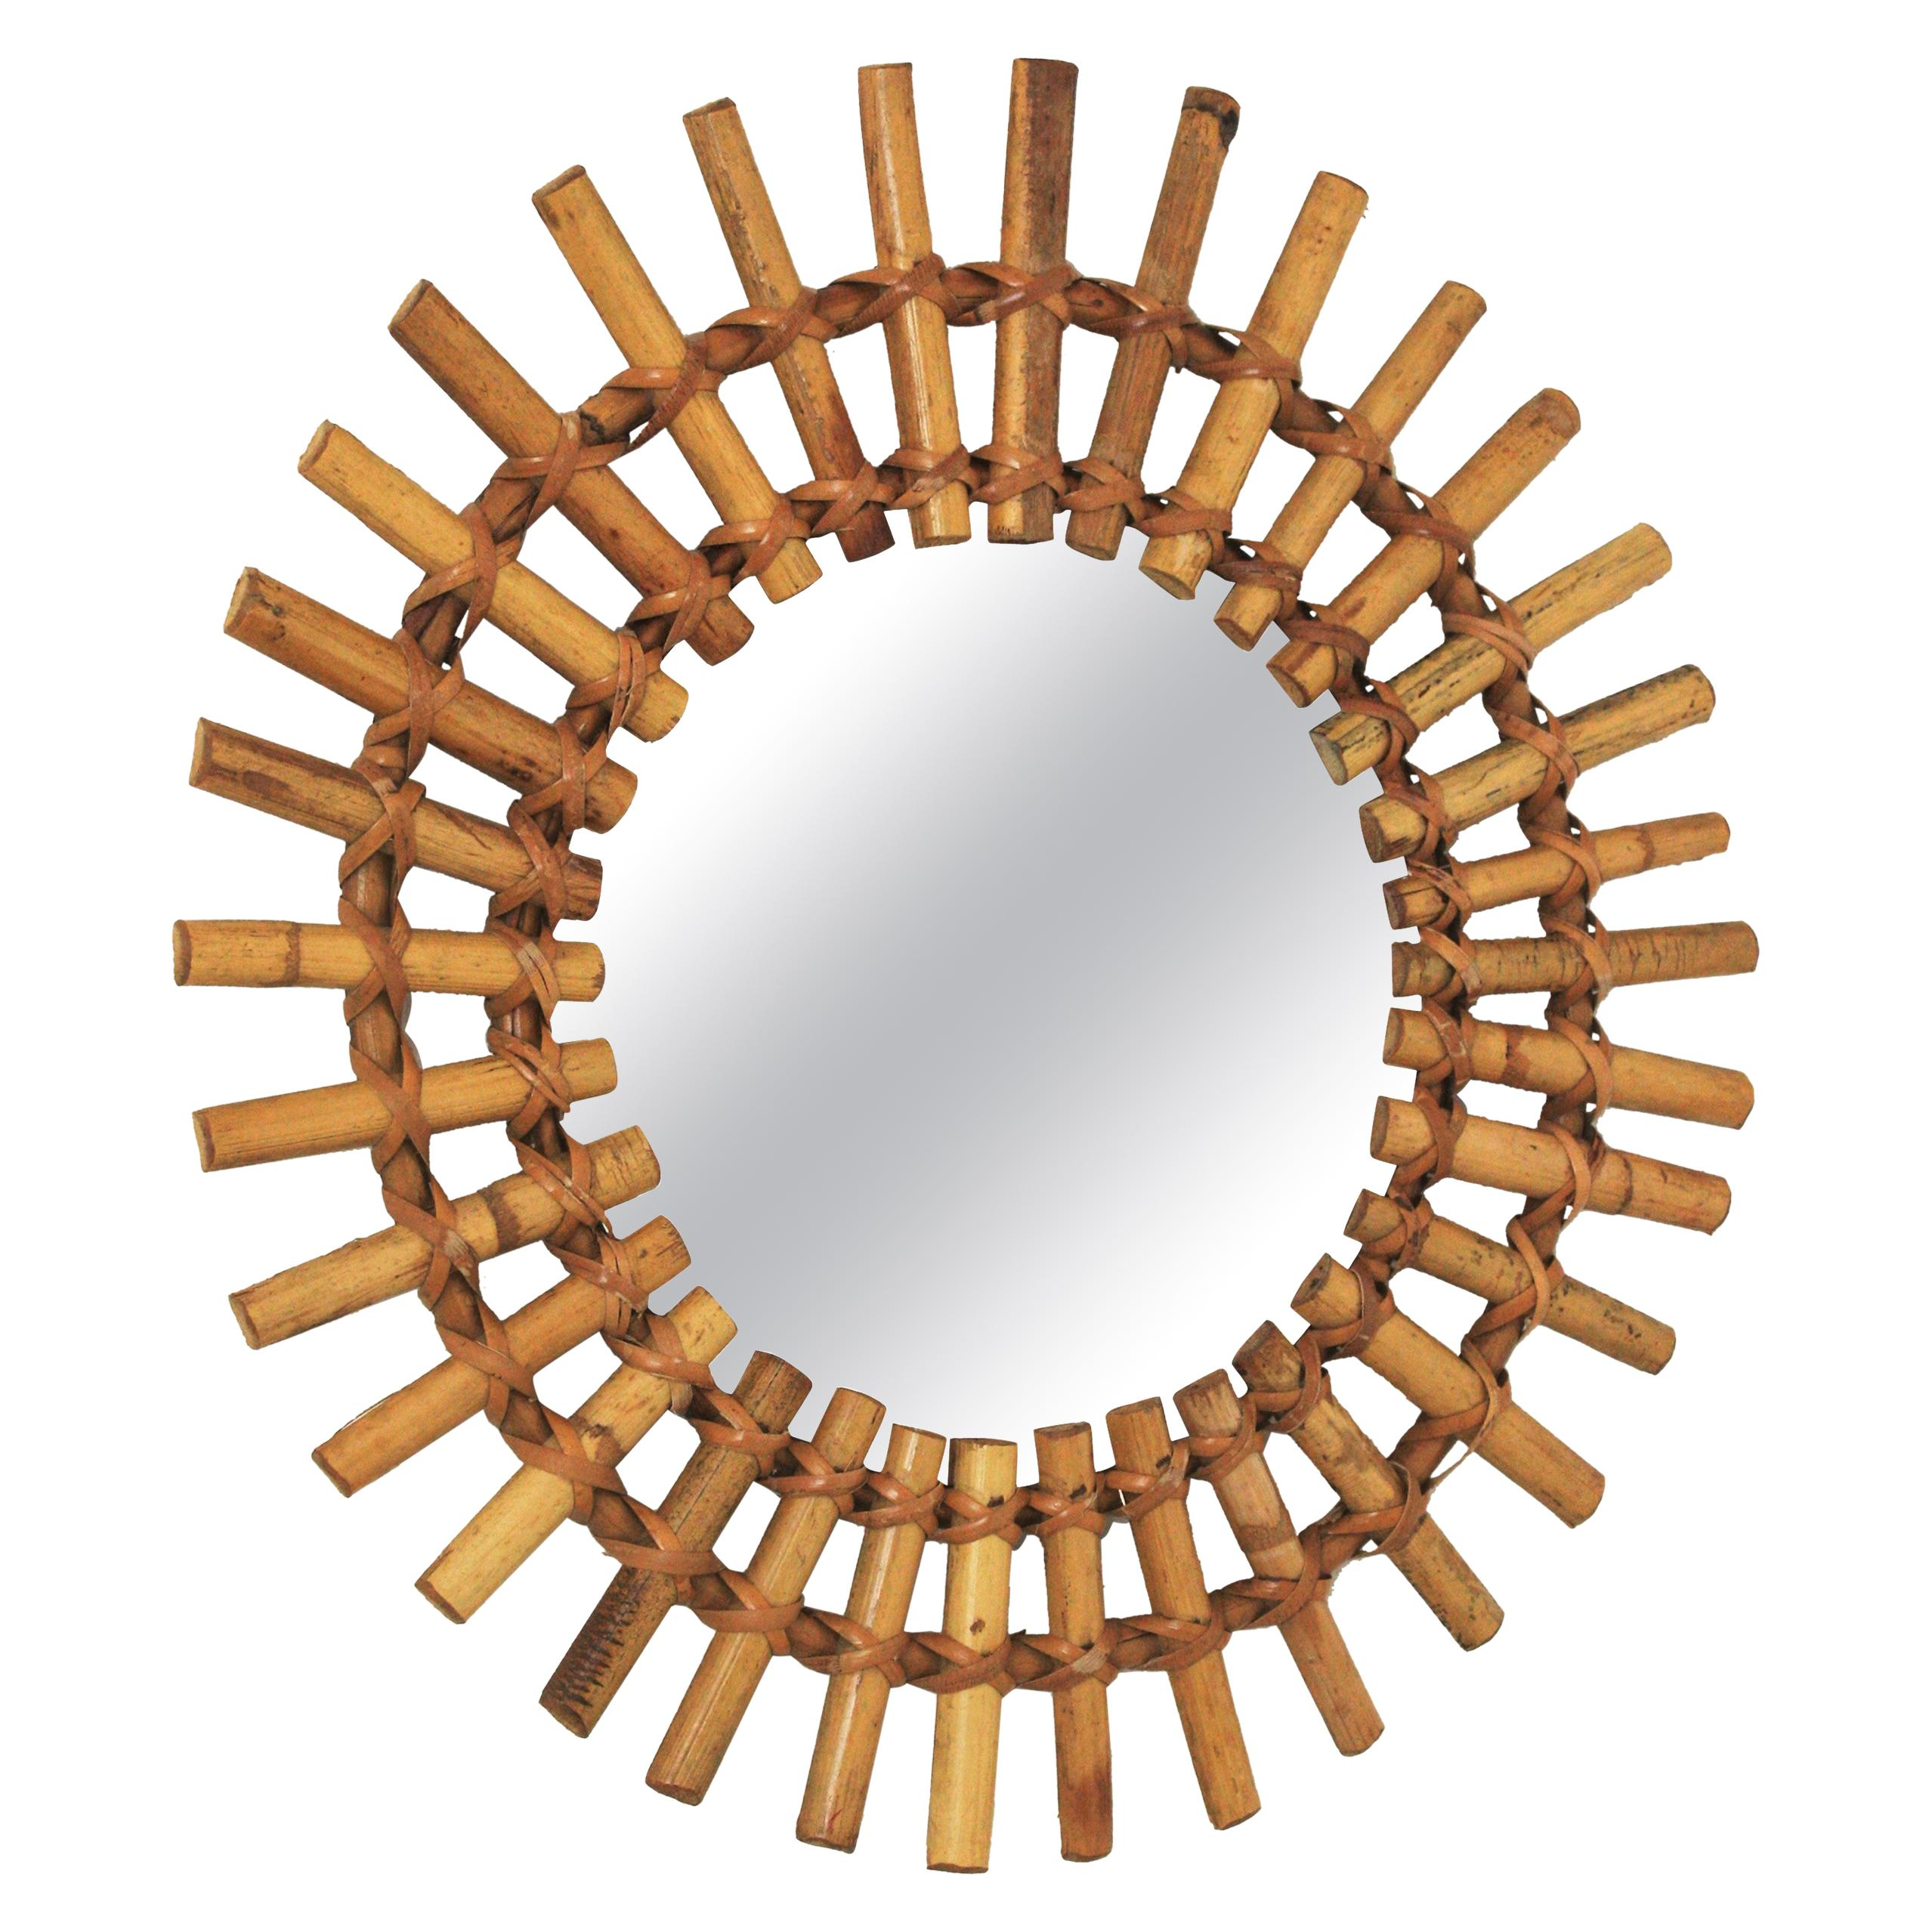 Sunburst Mirror in Rattan and Bamboo, France, 1950s